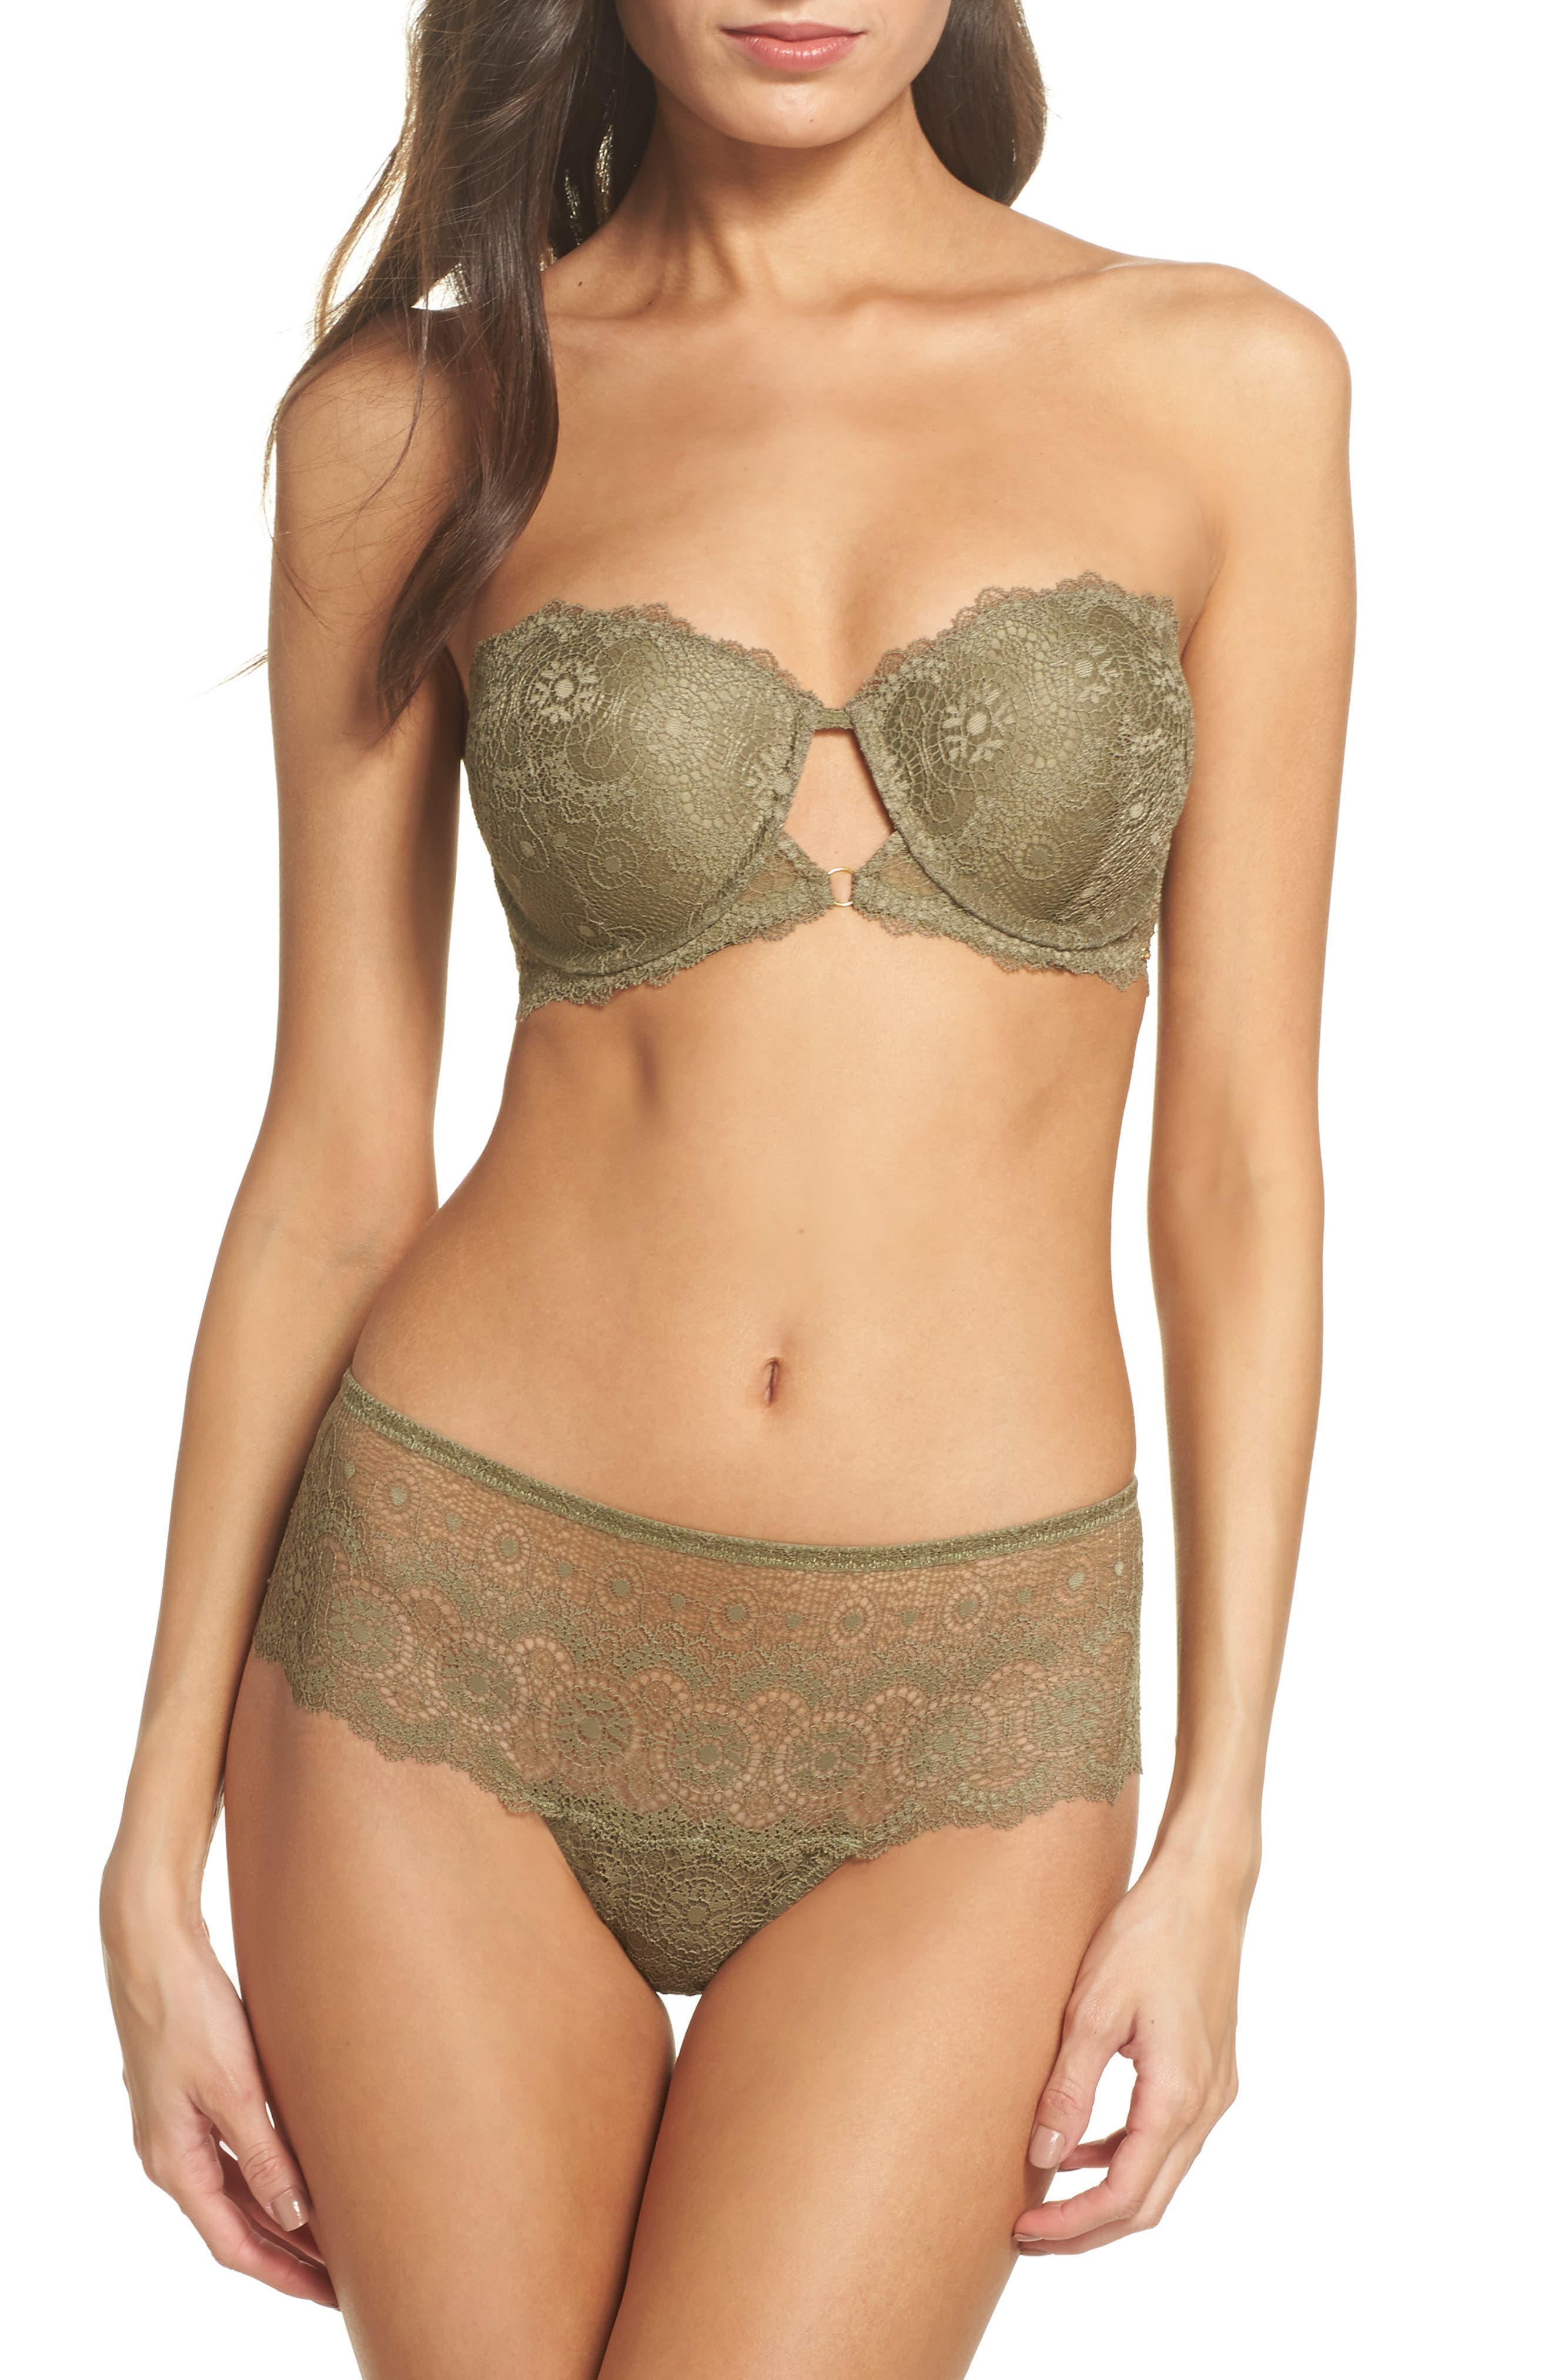 Strapless Underwire Lace Bra,                             Alternate thumbnail 7, color,                             Mermaid